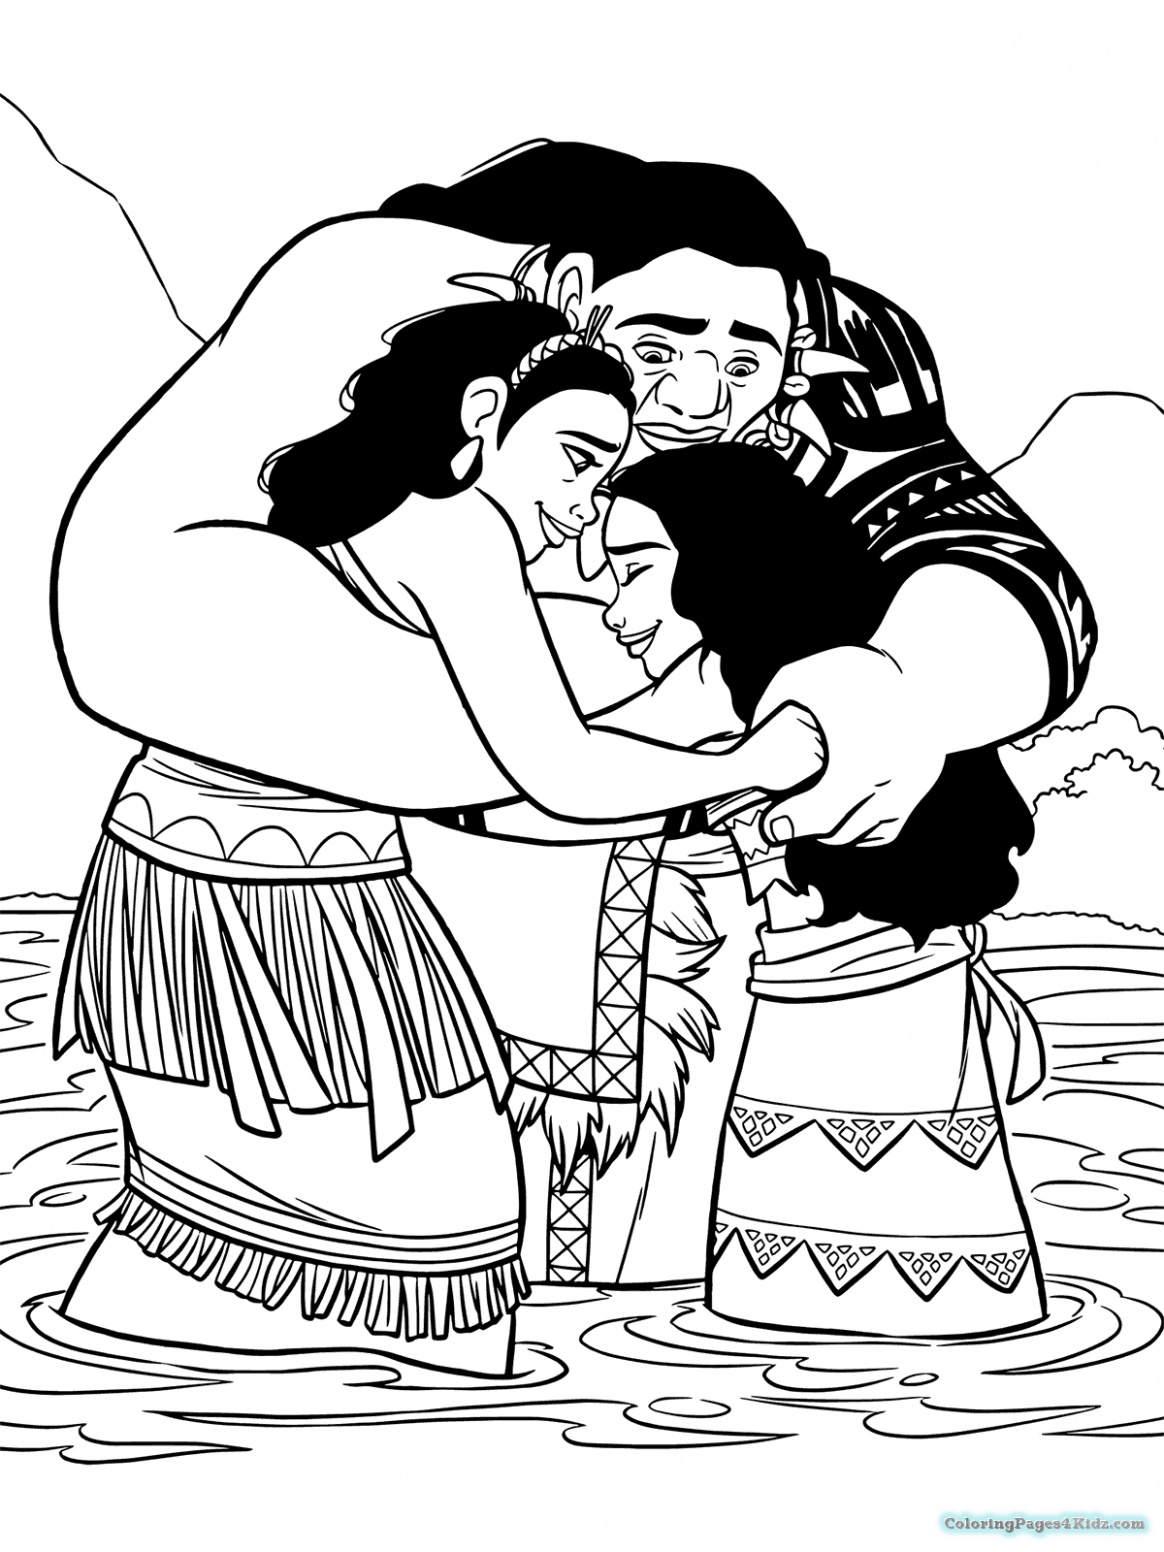 Coloring Pages : Coloring Pages Baby Moana Easy For Kids Color Sheet Sheets  Animals Christmas Printable 55 Moana Coloring Sheets Picture Ideas ~  Off-The Wall ATL